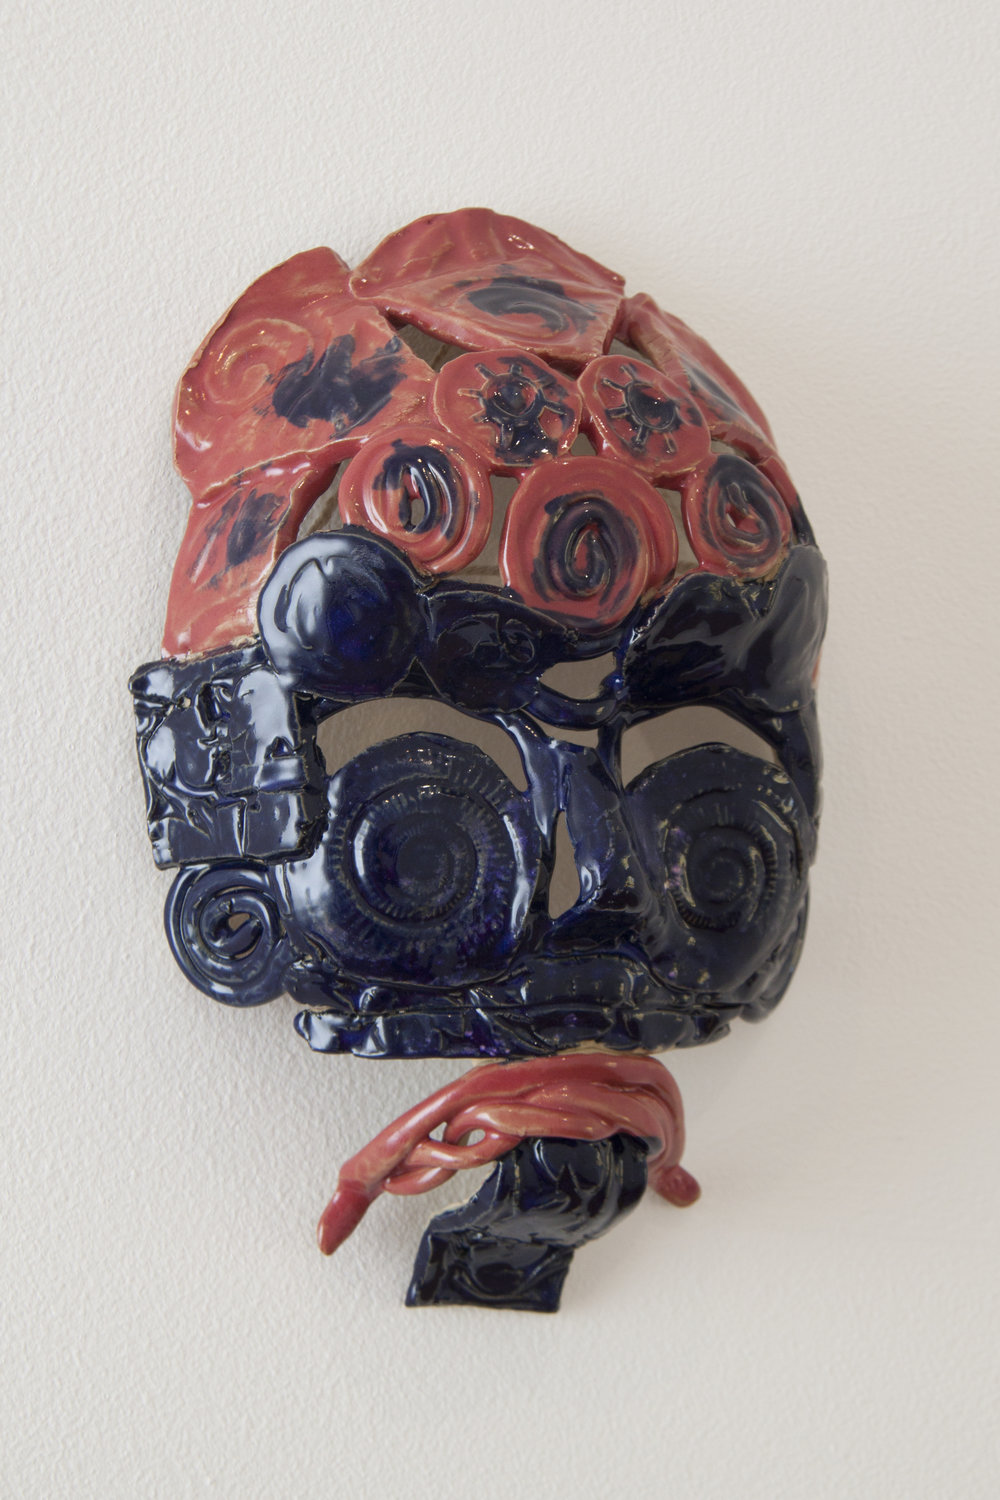 'Warrior' by ceramic artist Lorraine Currid.jpg